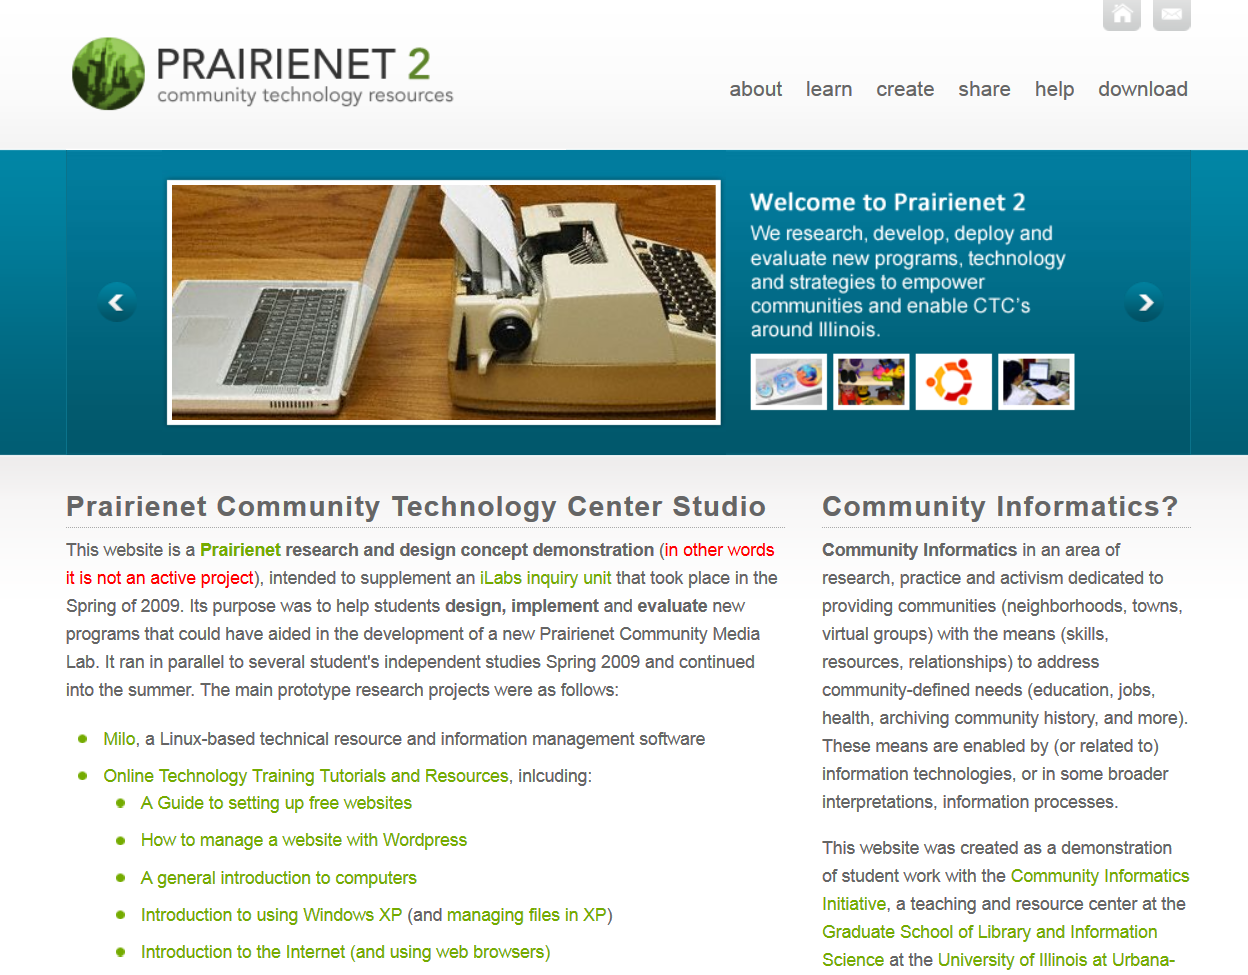 Prairienet 2: Community Technology Resources